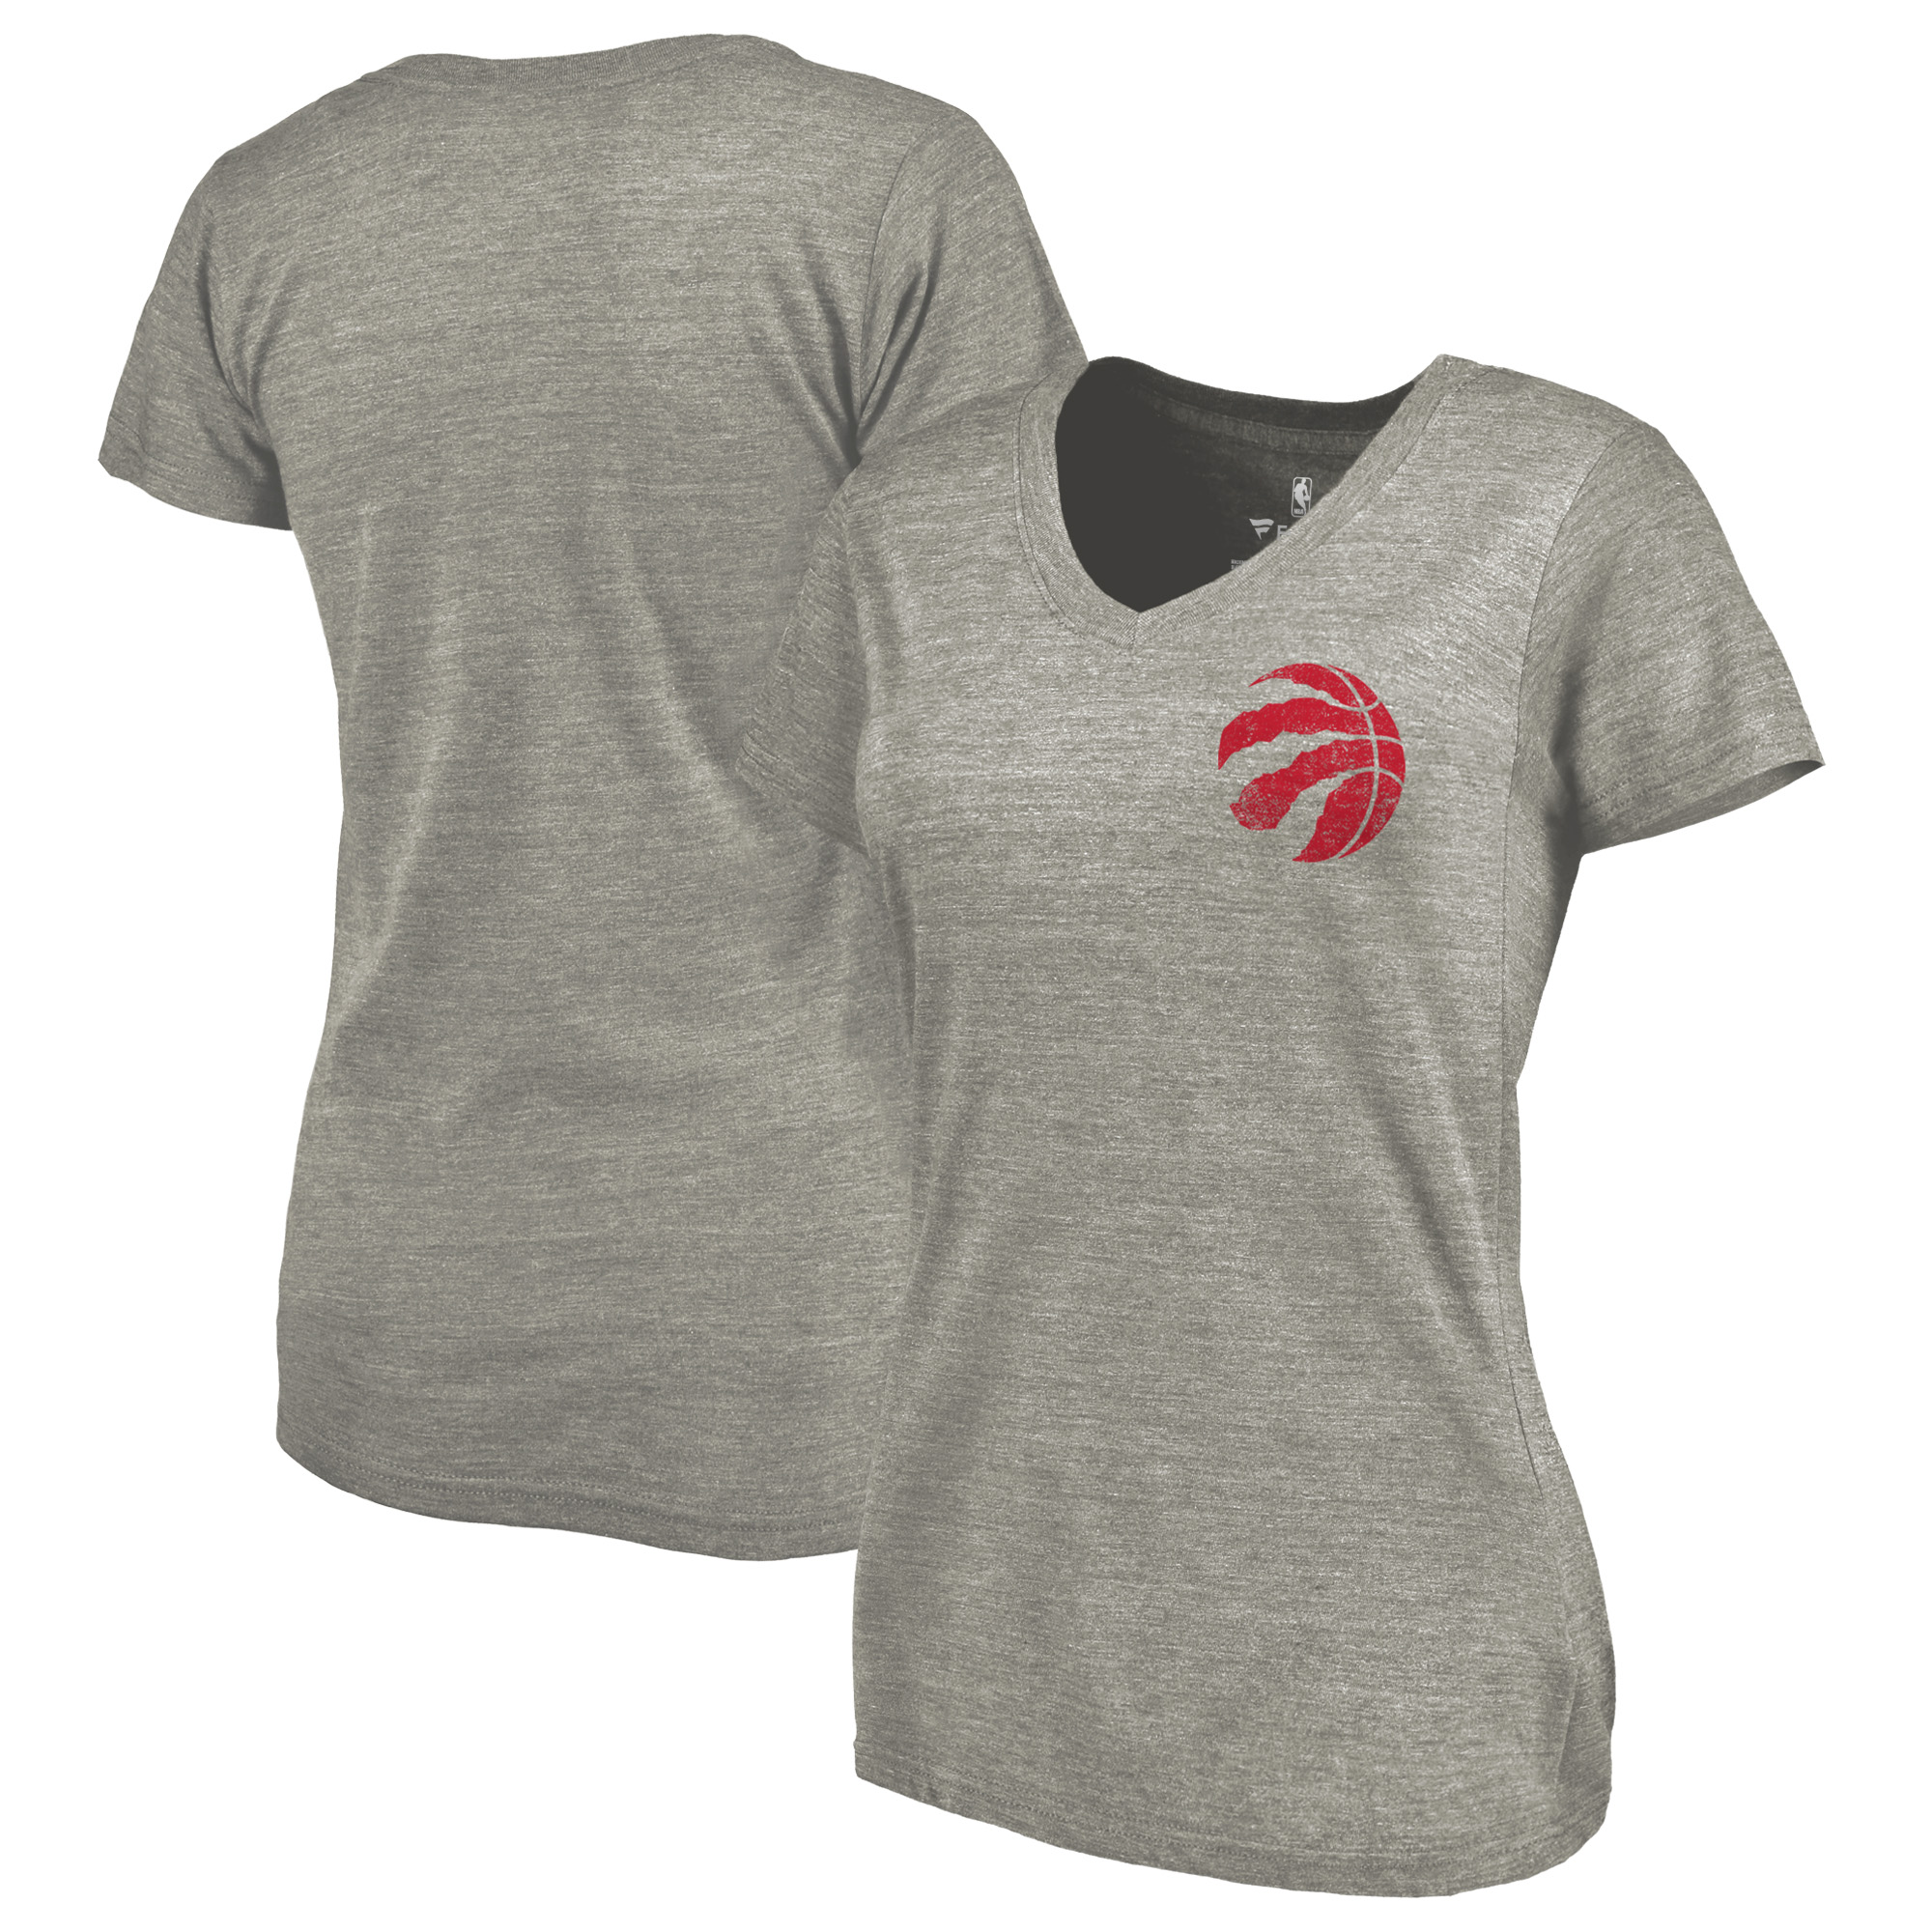 Toronto Raptors Fanatics Branded Women's Primary Logo Left Chest Distressed Tri-Blend V-Neck T-Shirt - Heathered Gray